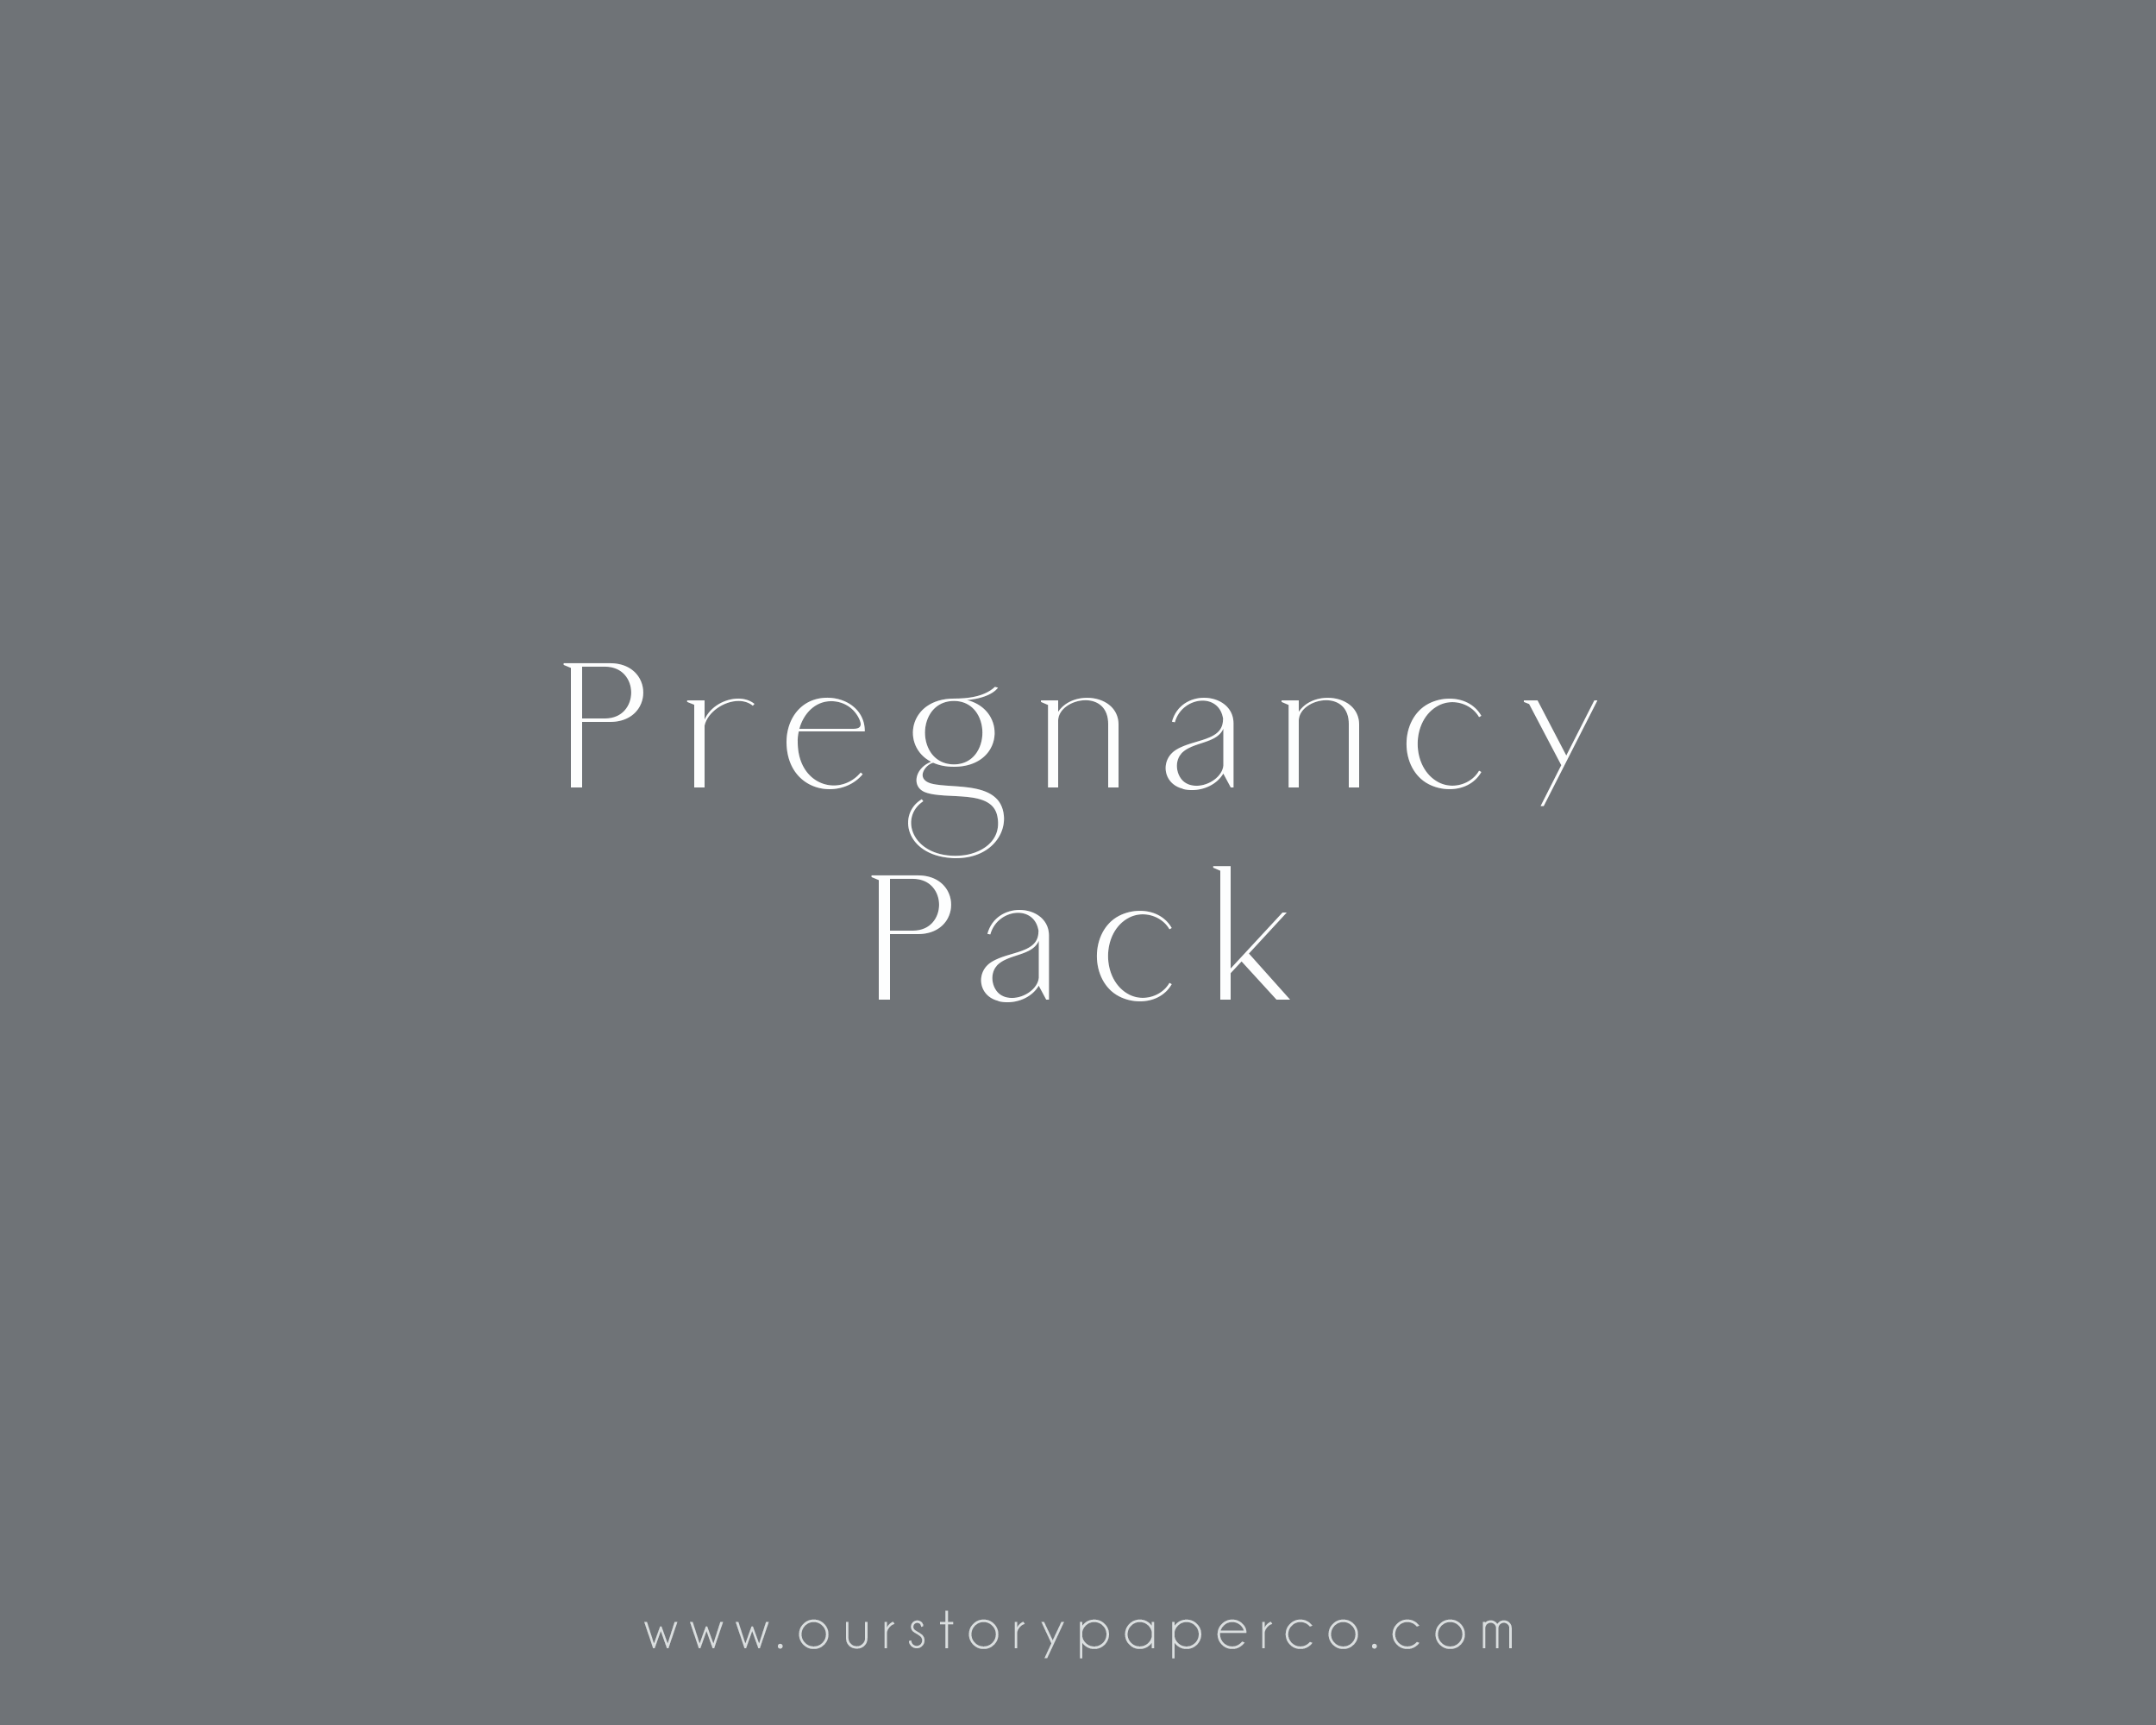 pregnancy pack - Our Story Paper Co.